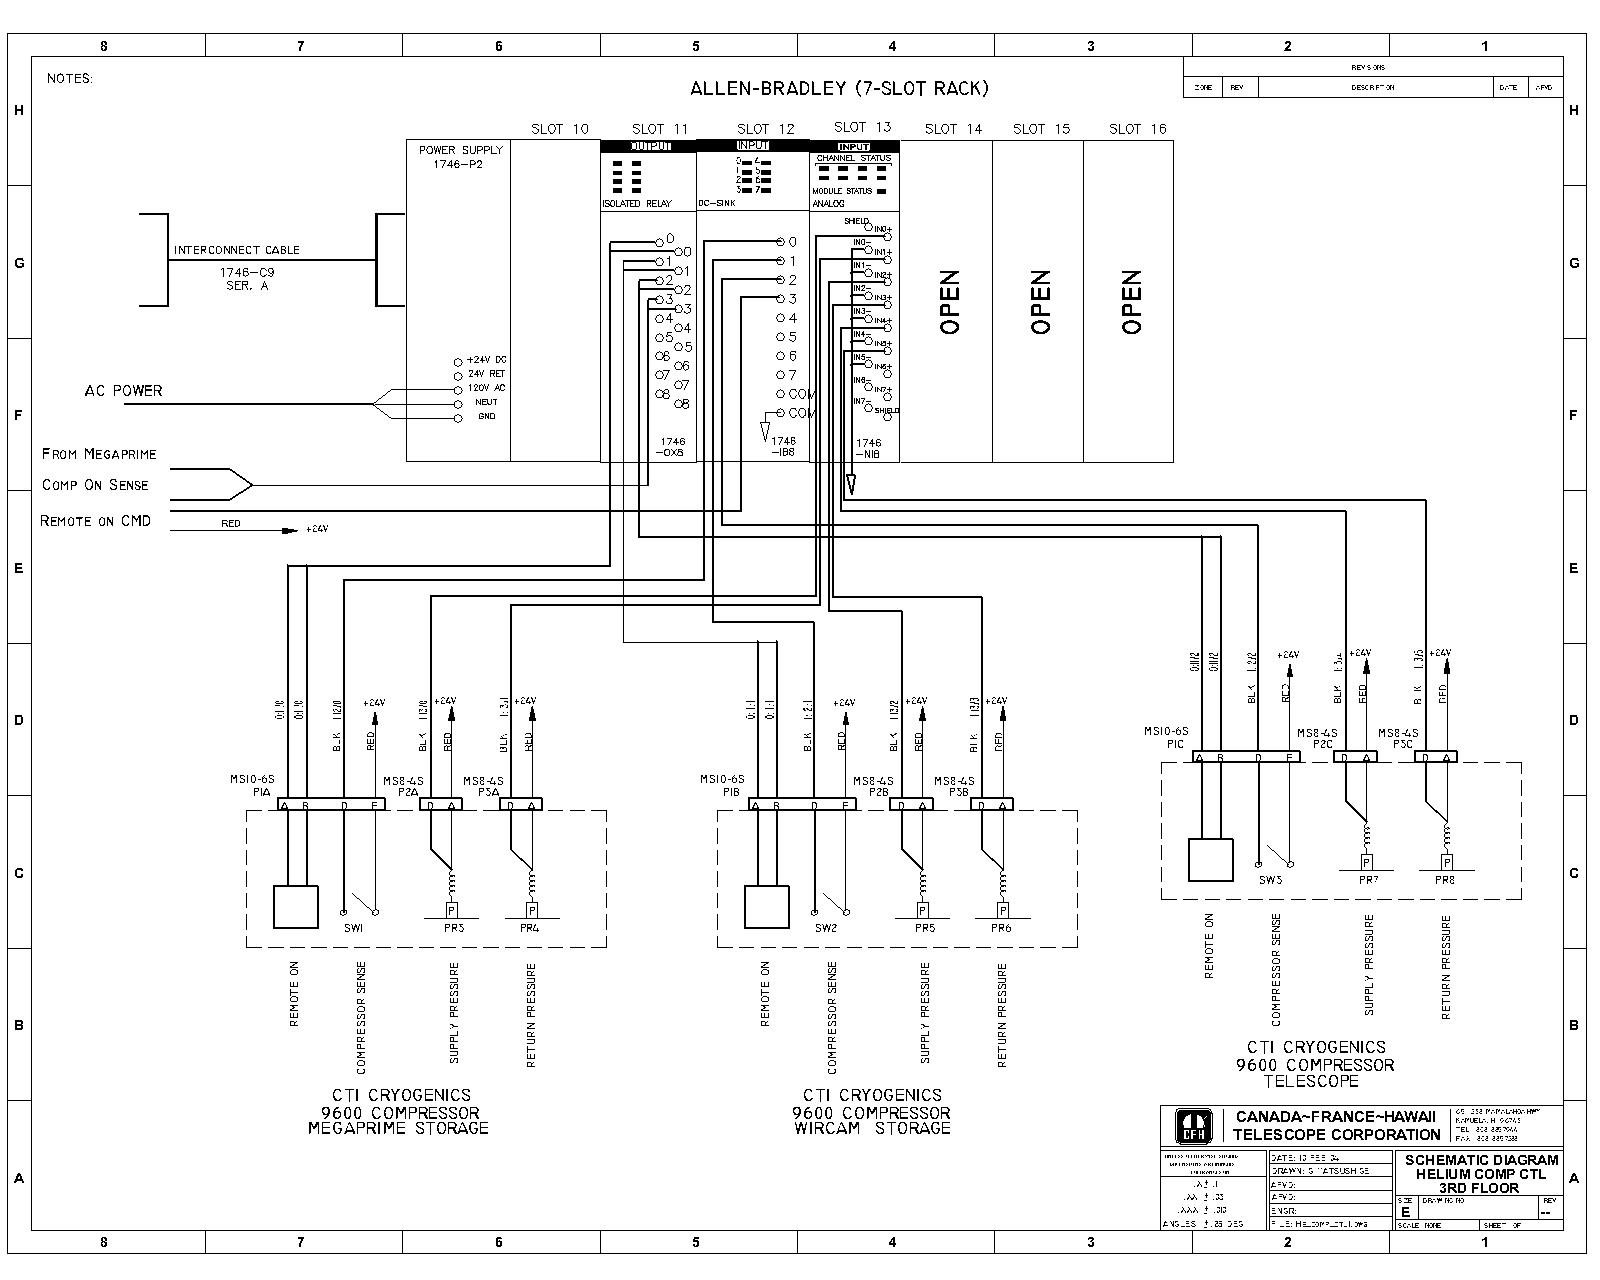 drawing wiring diagrams drawing image wiring diagram how to draw plc wiring diagram a wiring diagram on drawing wiring diagrams